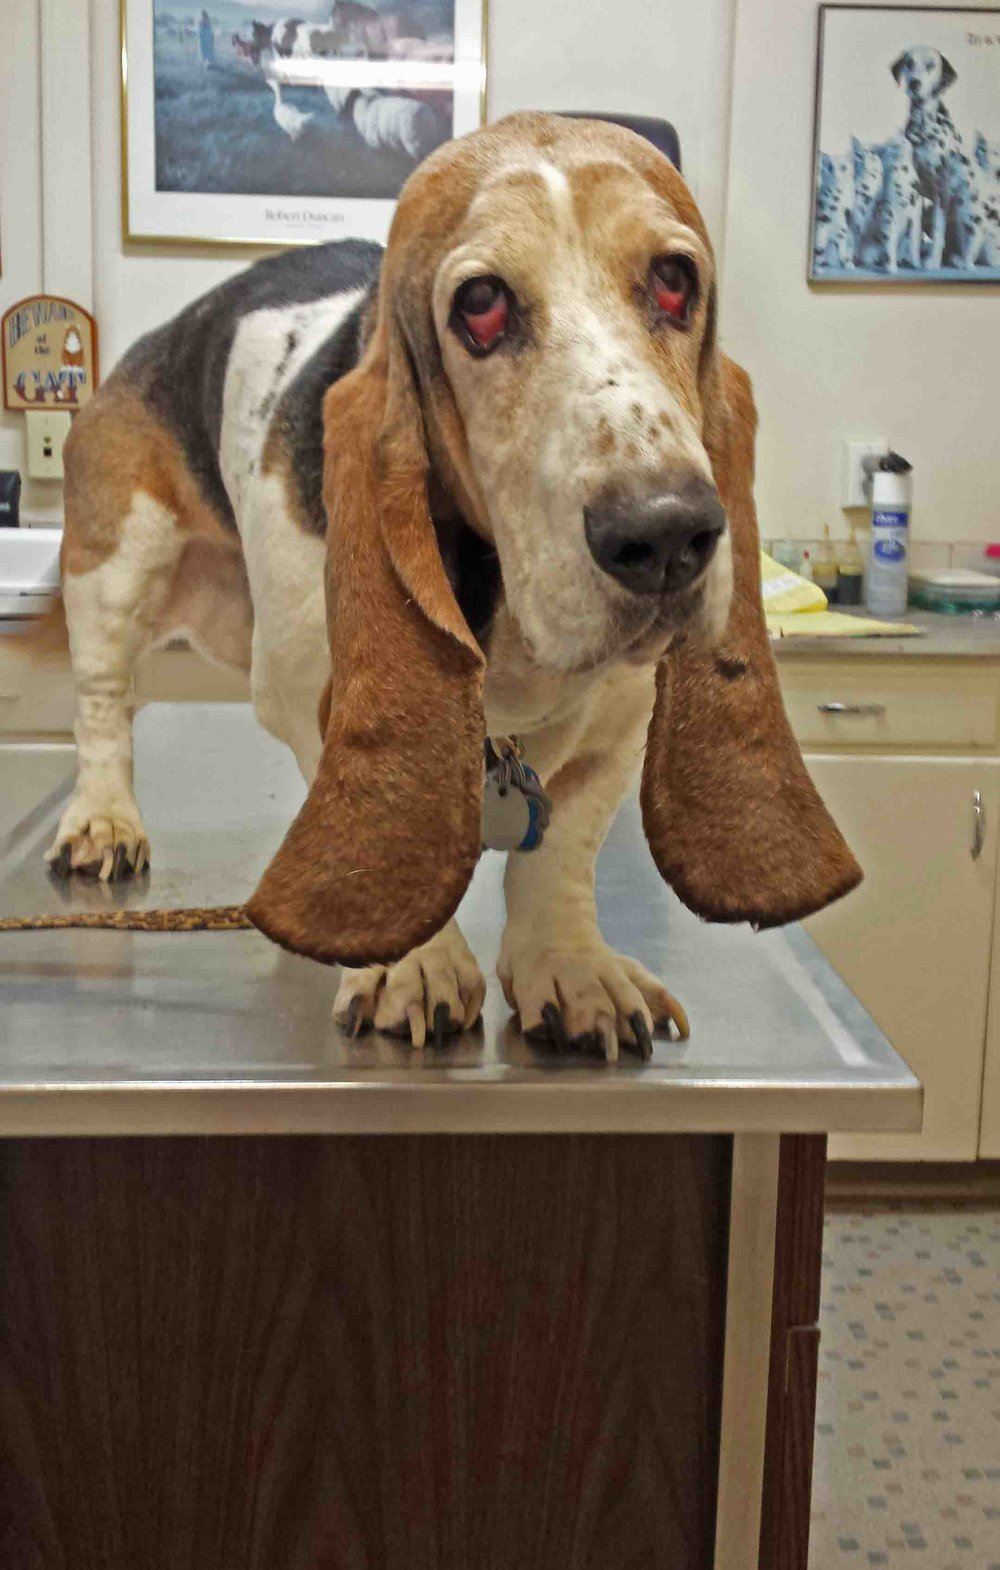 Dearly departed Elvis at the vets. Photo: (c) Barb Ayers, DogDiary.org